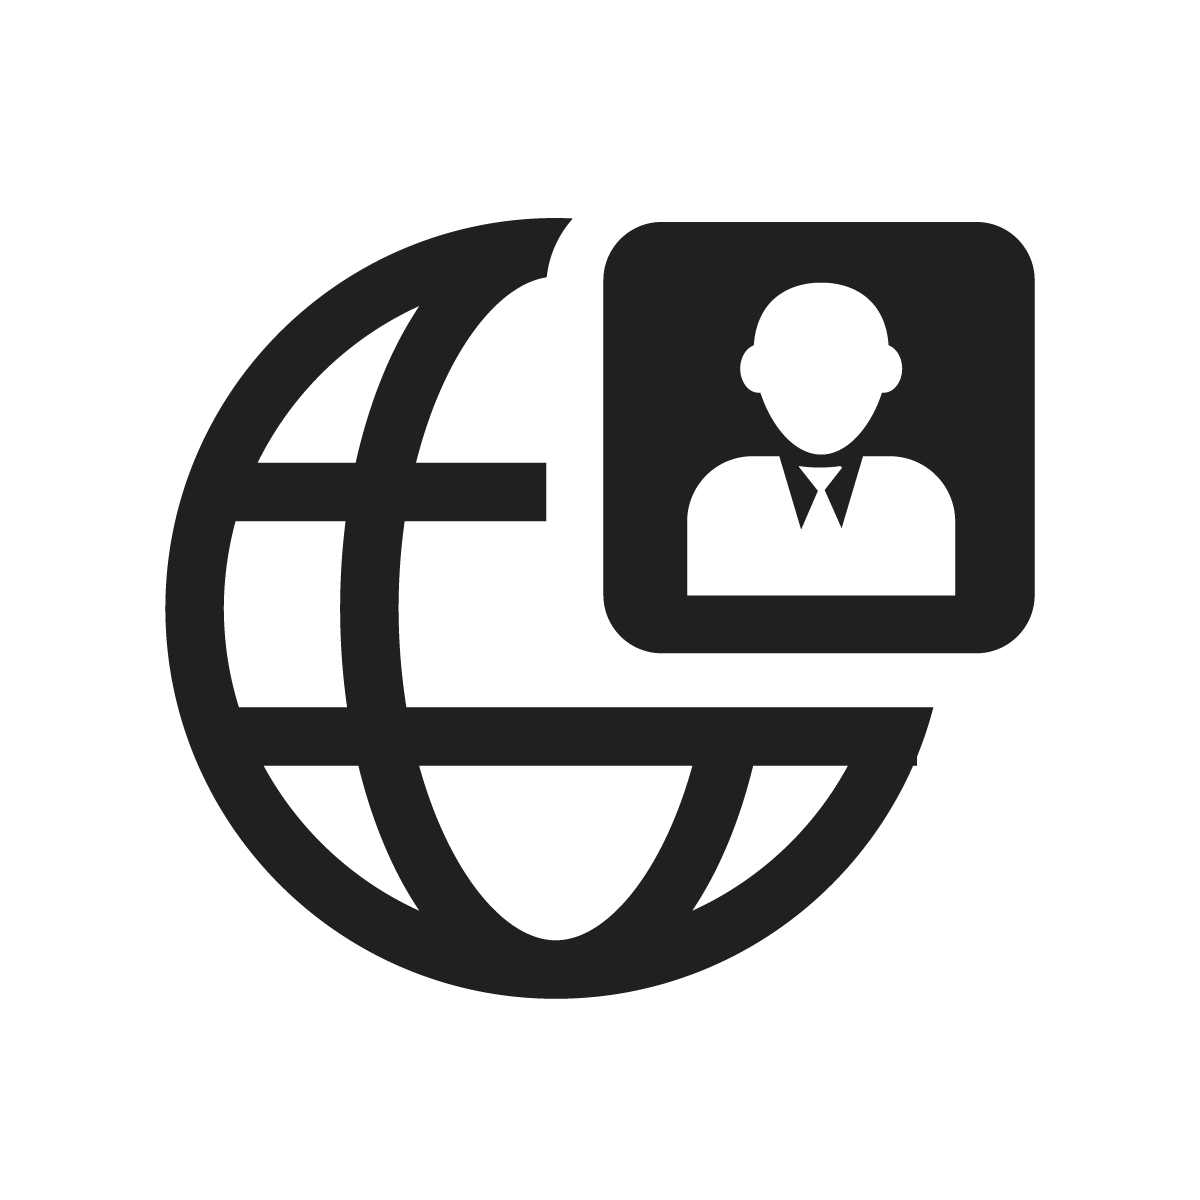 ONTAL_ICON_CORPORATE_NORMAL.png